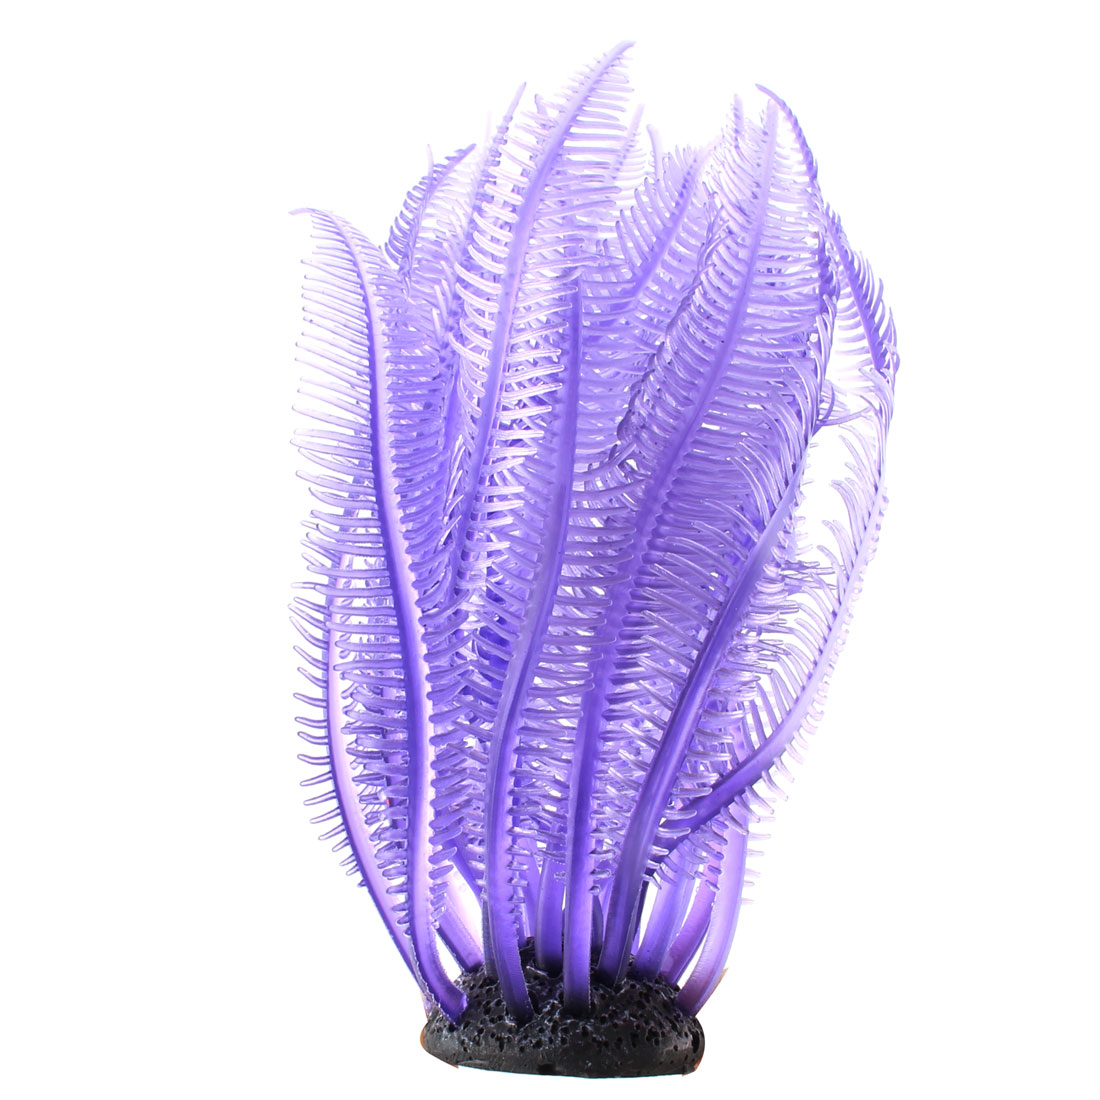 Fish Tank Aquarium Decor Silicone Simulation Sea Anemone Plant Light Purple